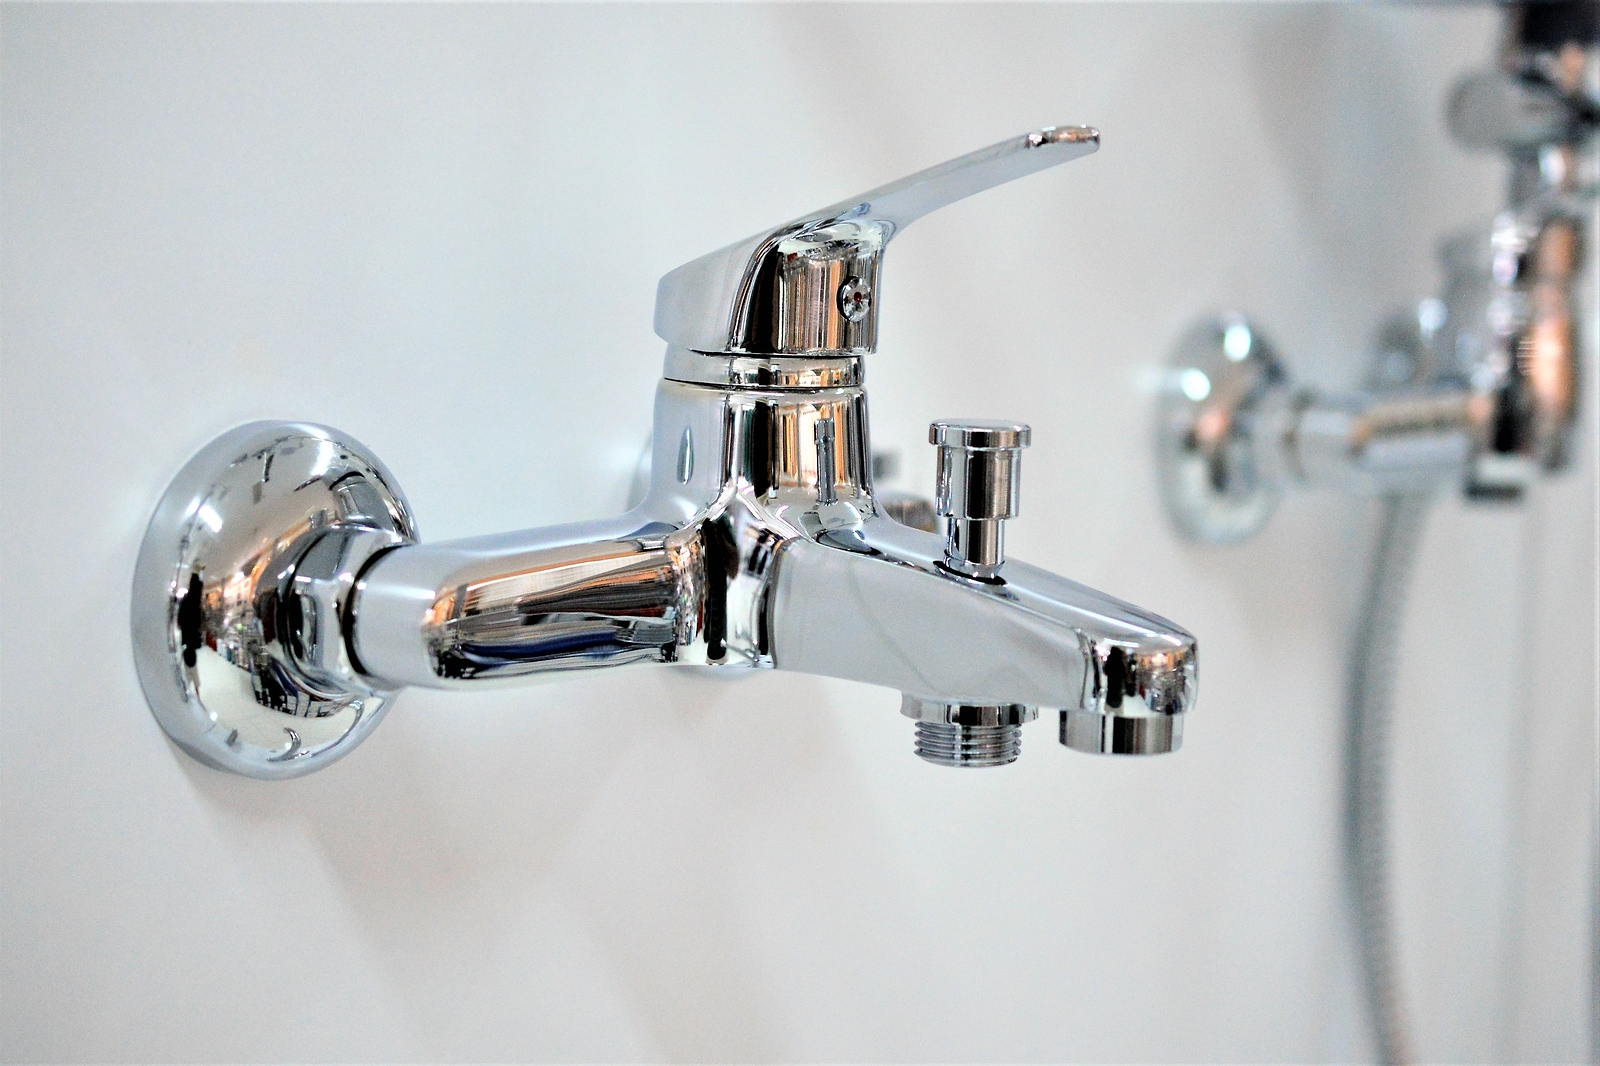 Wall-mounted single-handle faucets save counter space while offering ease of access when your hands are full